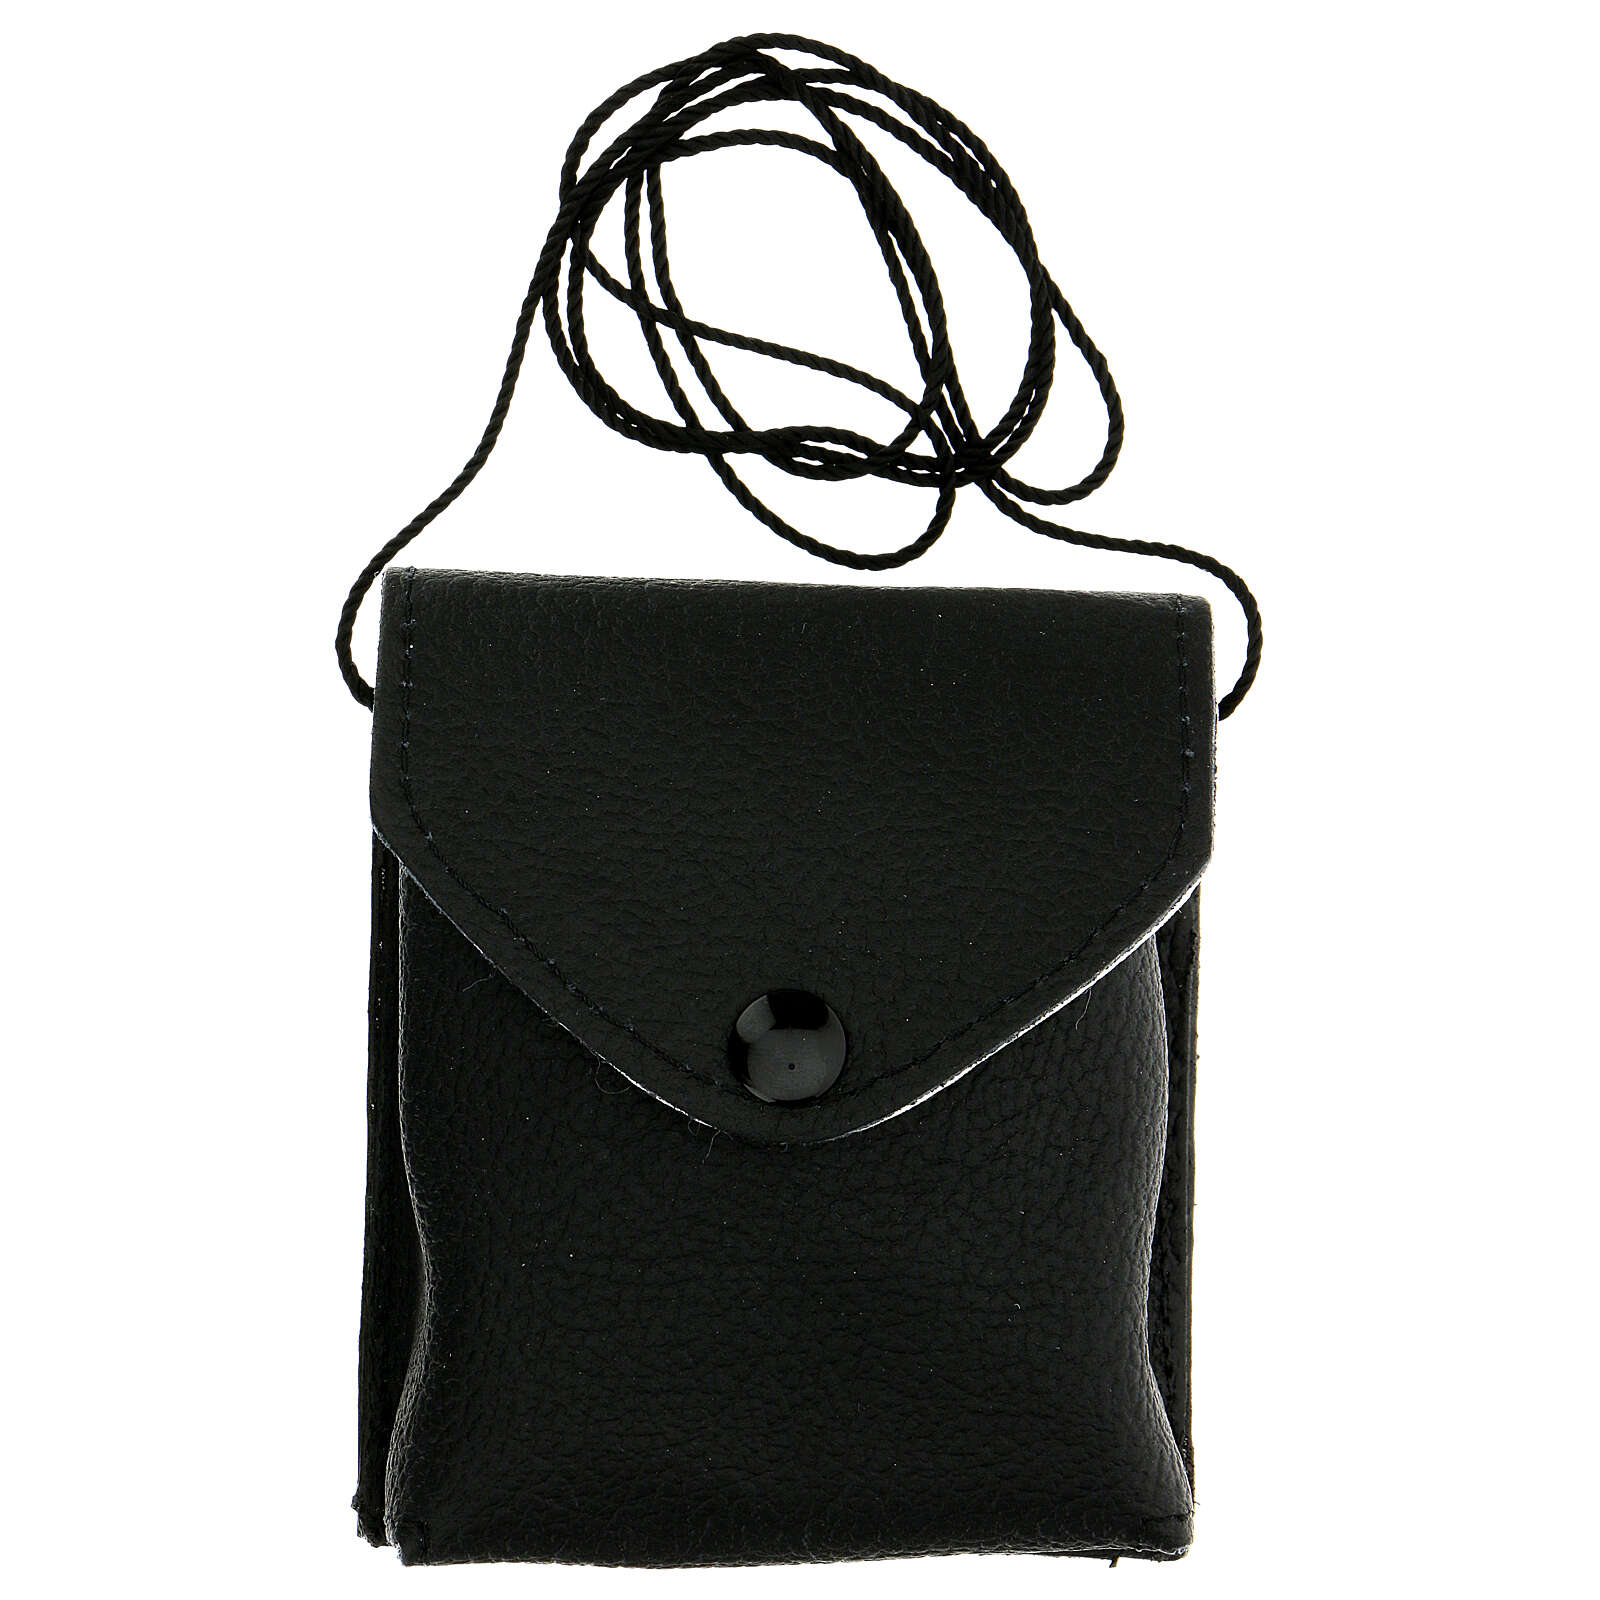 Black leather burse with string and 3 in pyx 3